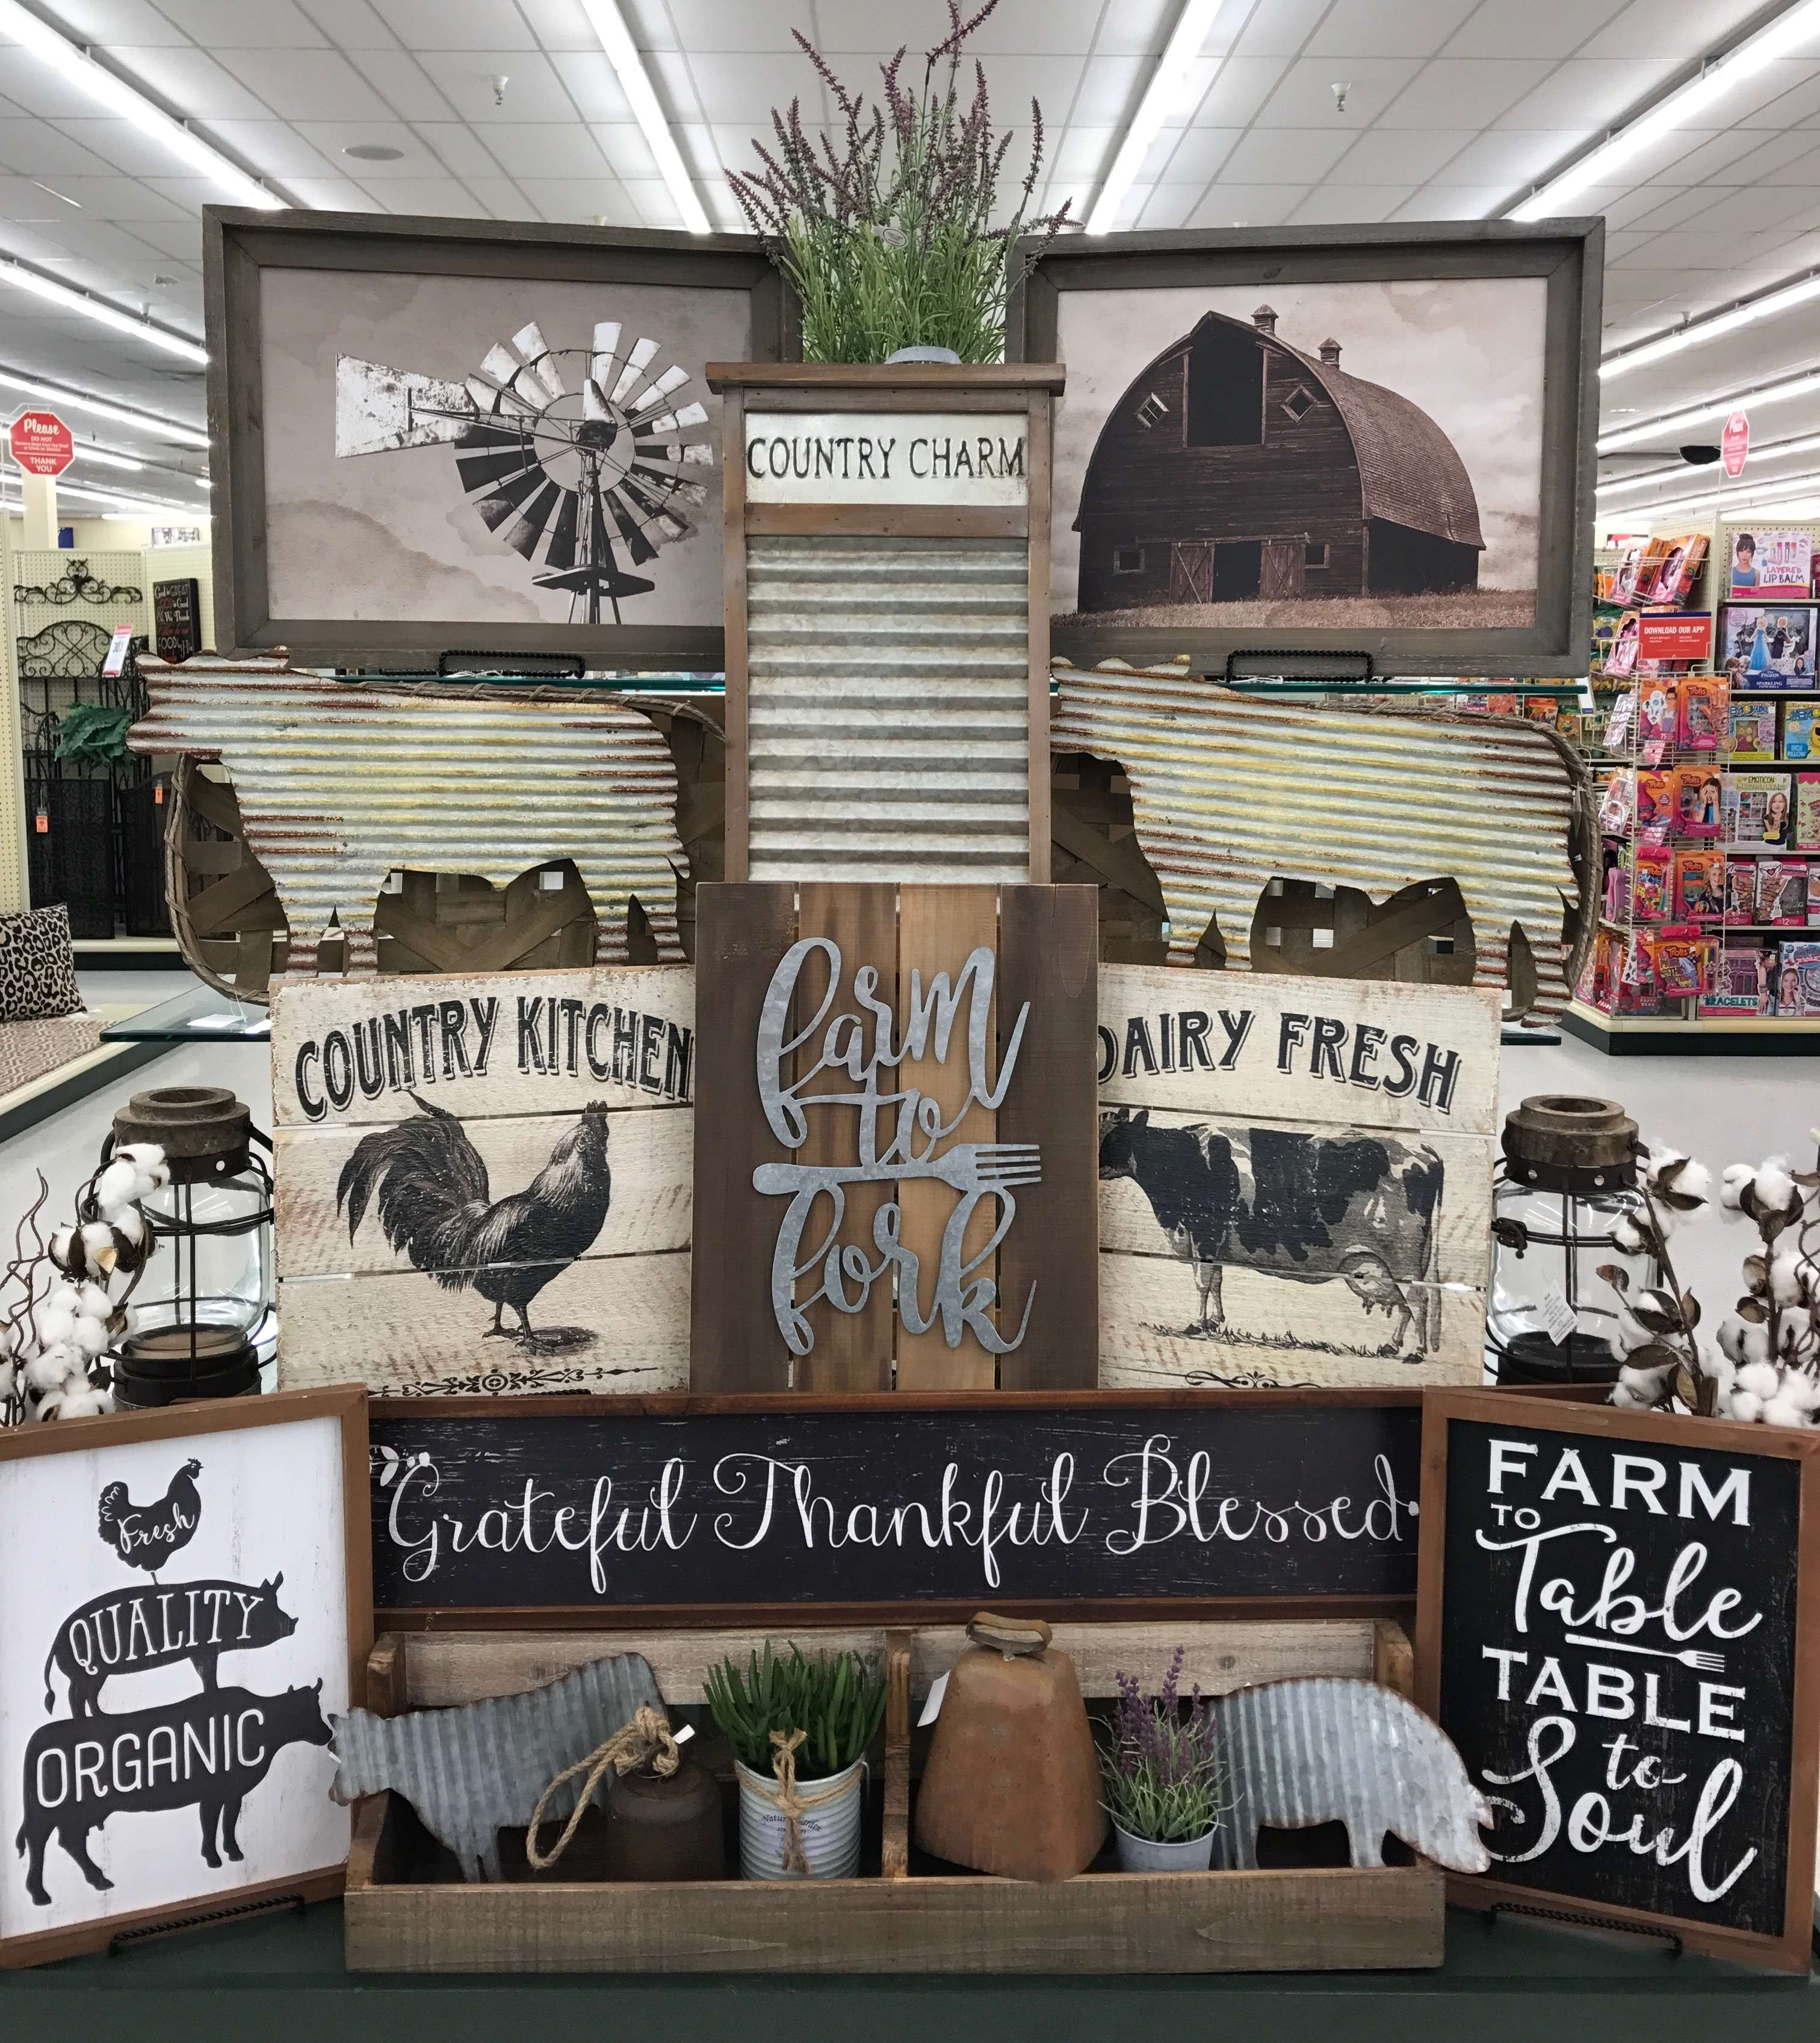 Laundry Room Decor Hobby Lobby Awesome 27 Beautiful Country Kitchen Throughout Most Recent Hobby Lobby Wall Art (View 7 of 20)